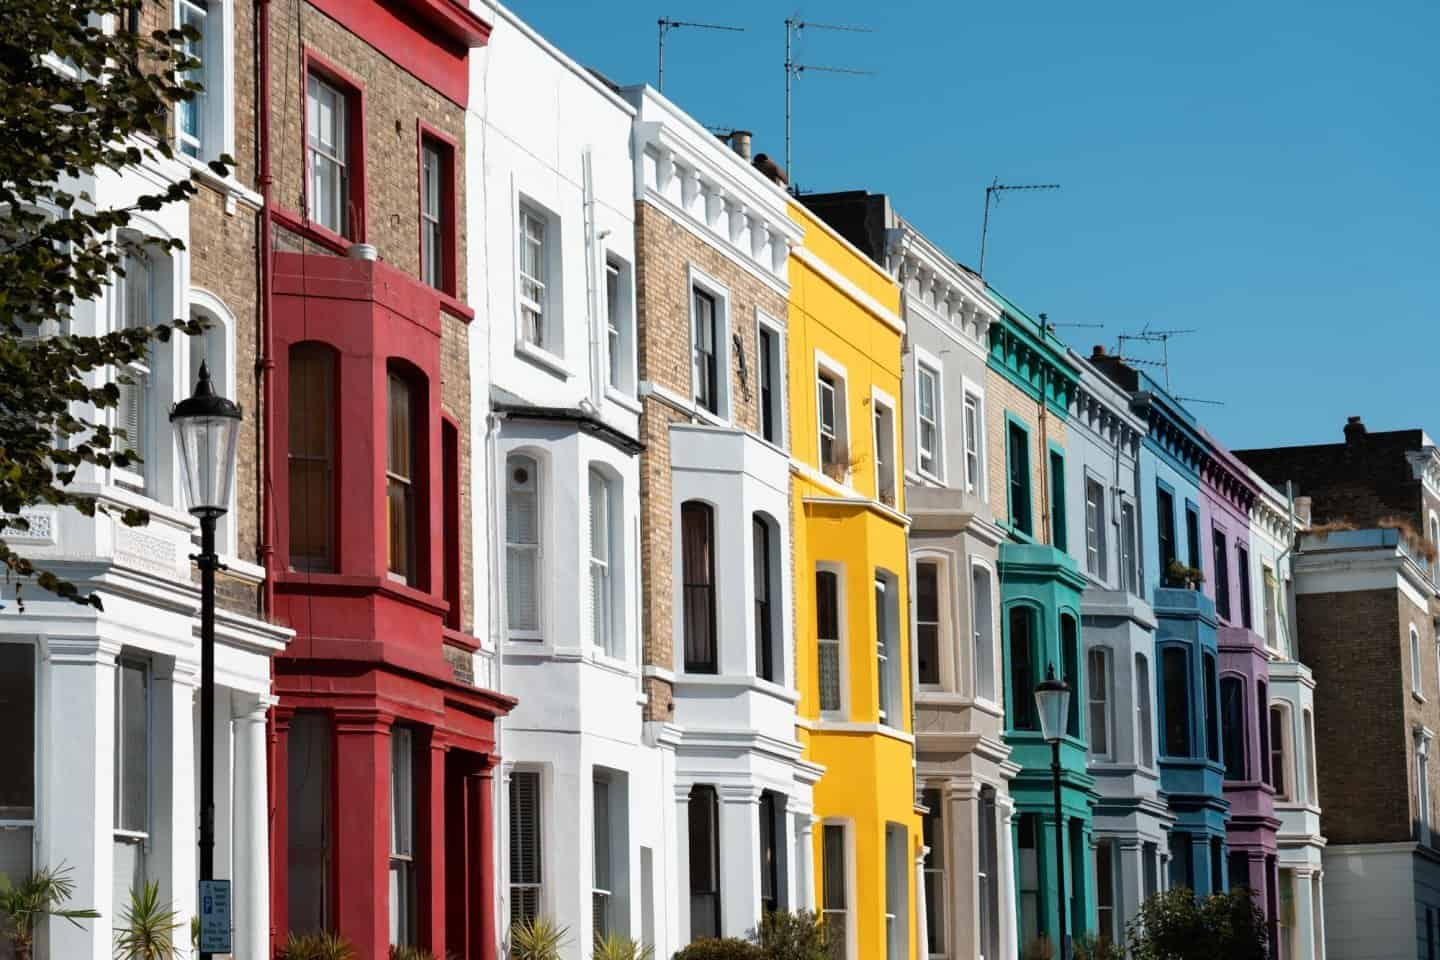 Visiting the rainbow coloured houses in Notting Hill should be on everyone's London bucket list.